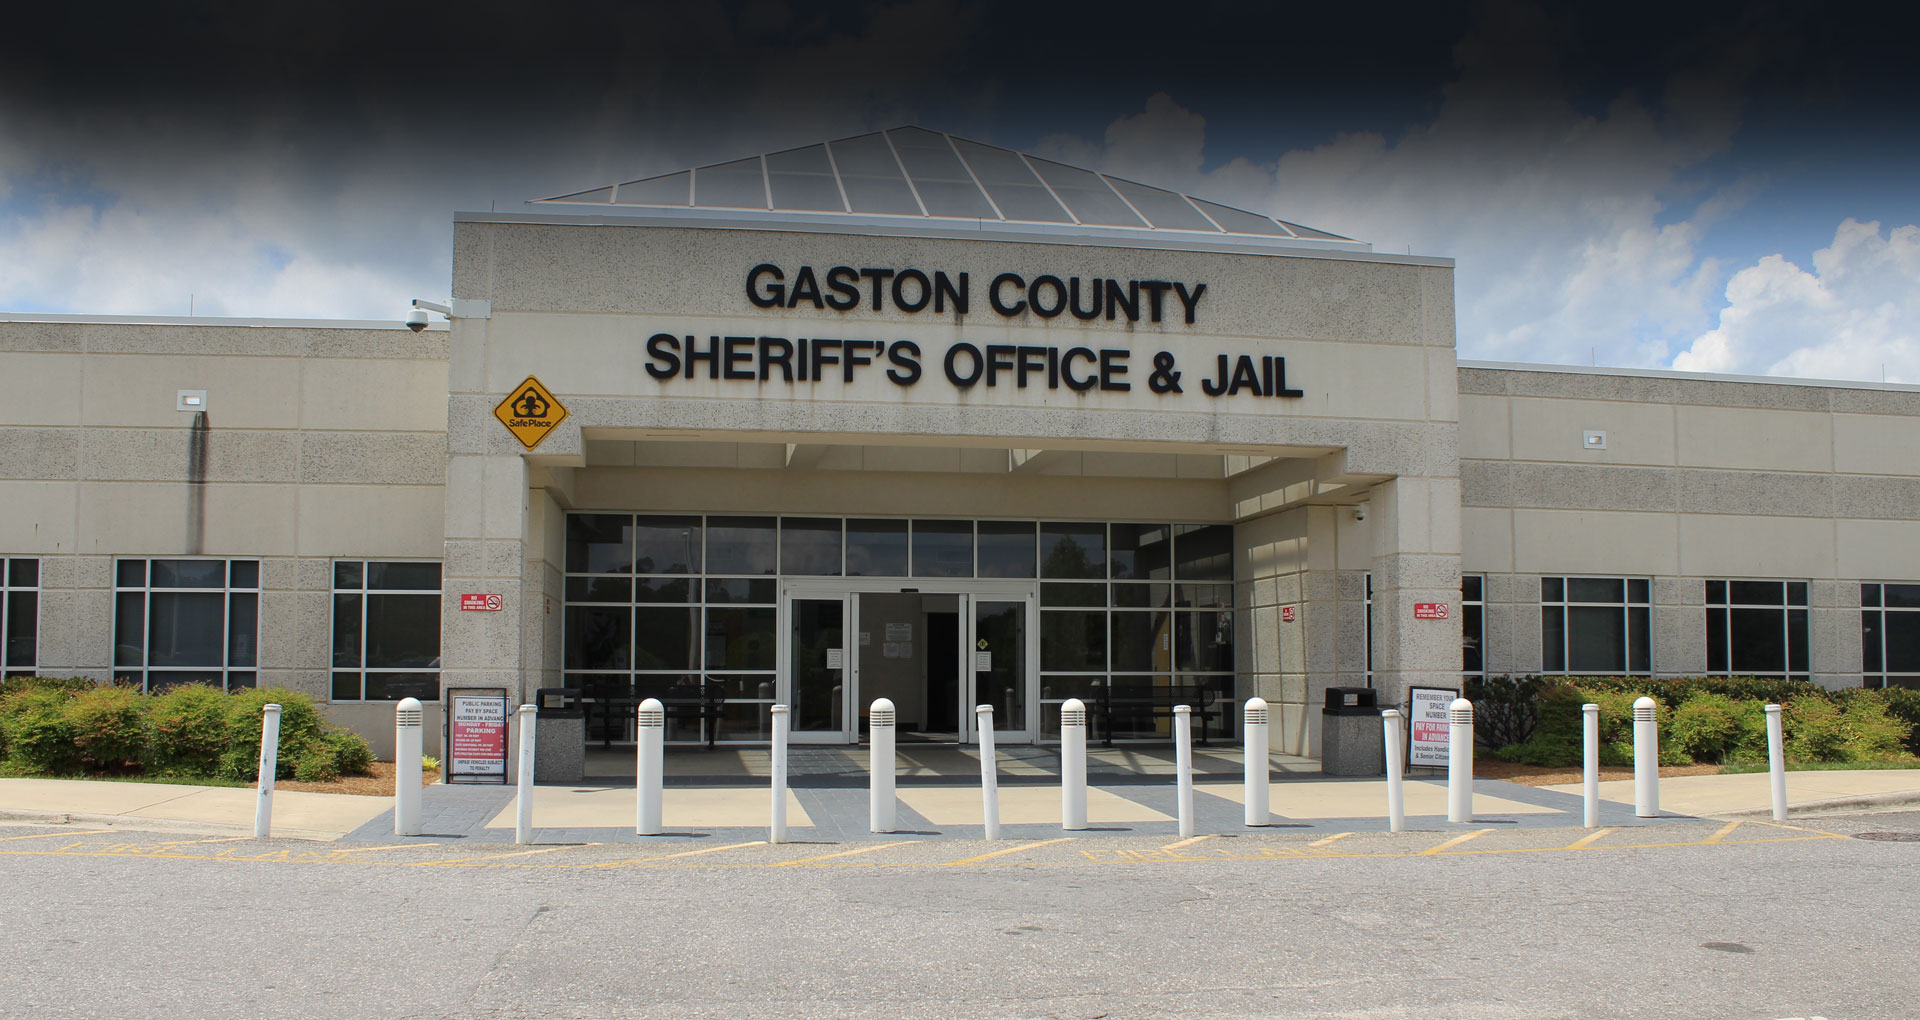 Gaston county Sherrif's office and Jail